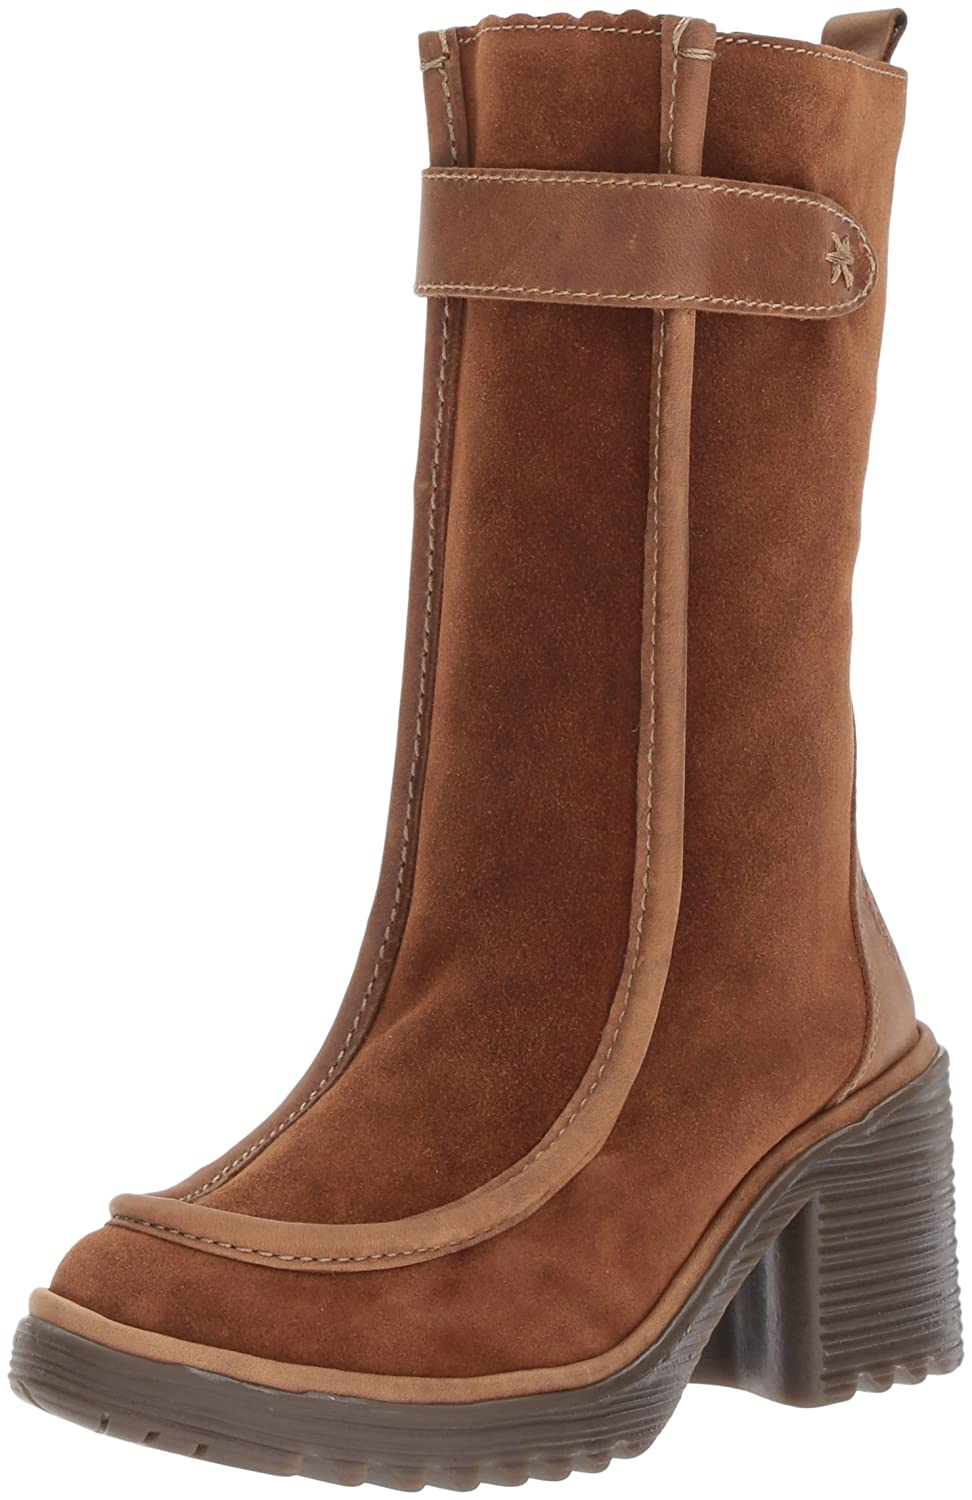 FLY London Women's Woof783fly Mid Calf Boot B06WWP669Z 39 M EU (8-8.5 US)|Camel Oil Suede/Rug